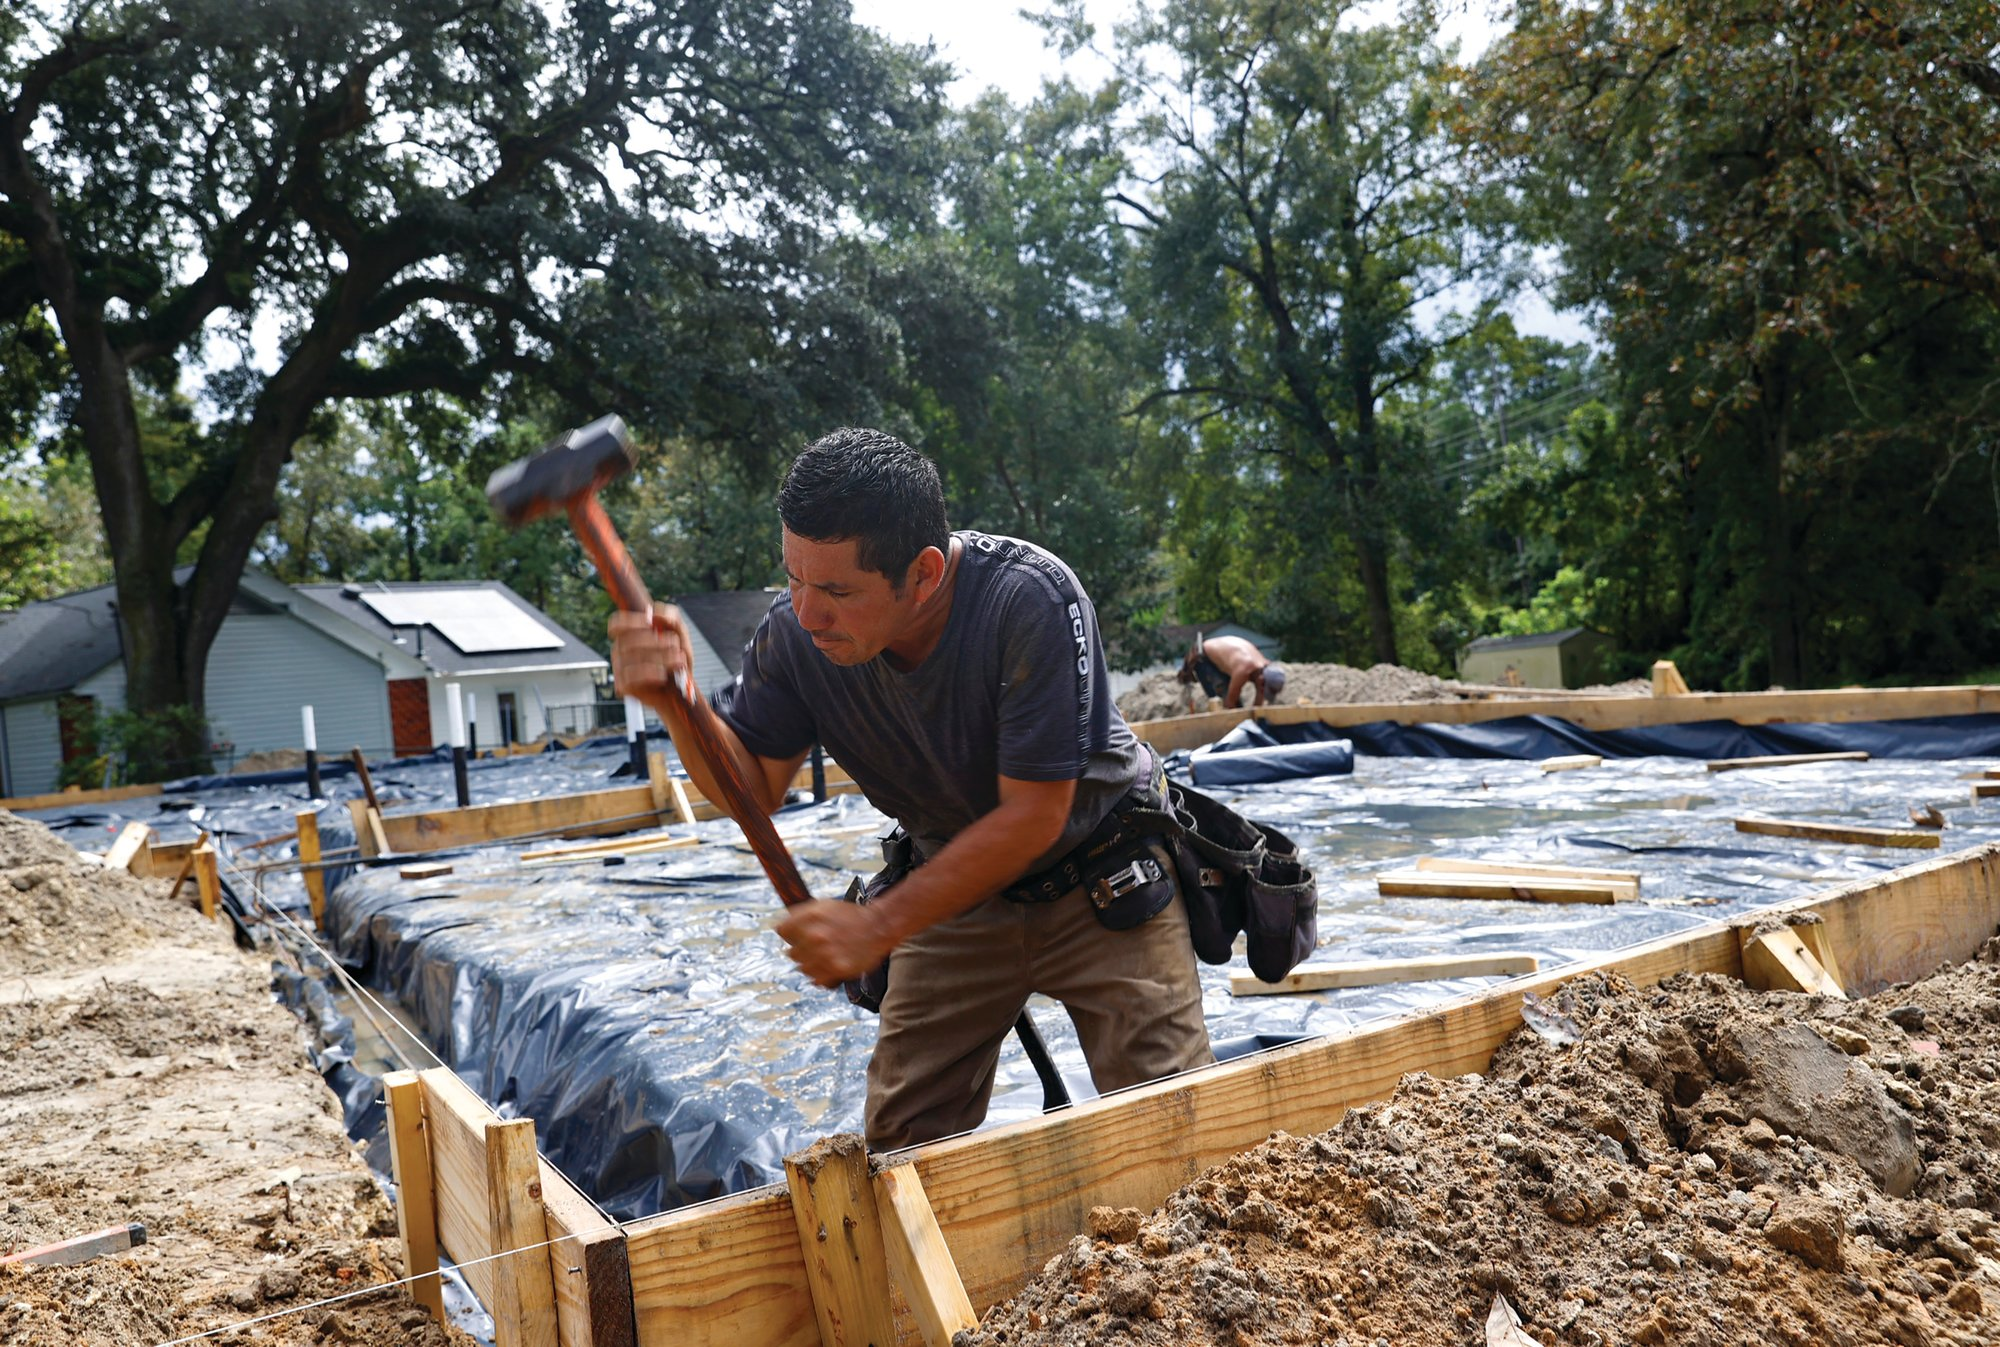 Erik Garcia uses a sledgehammer on the foundation of a new house in Hanahan. The city of Hanahan has issued almost as many demolition permits since January as in the past three years combined.